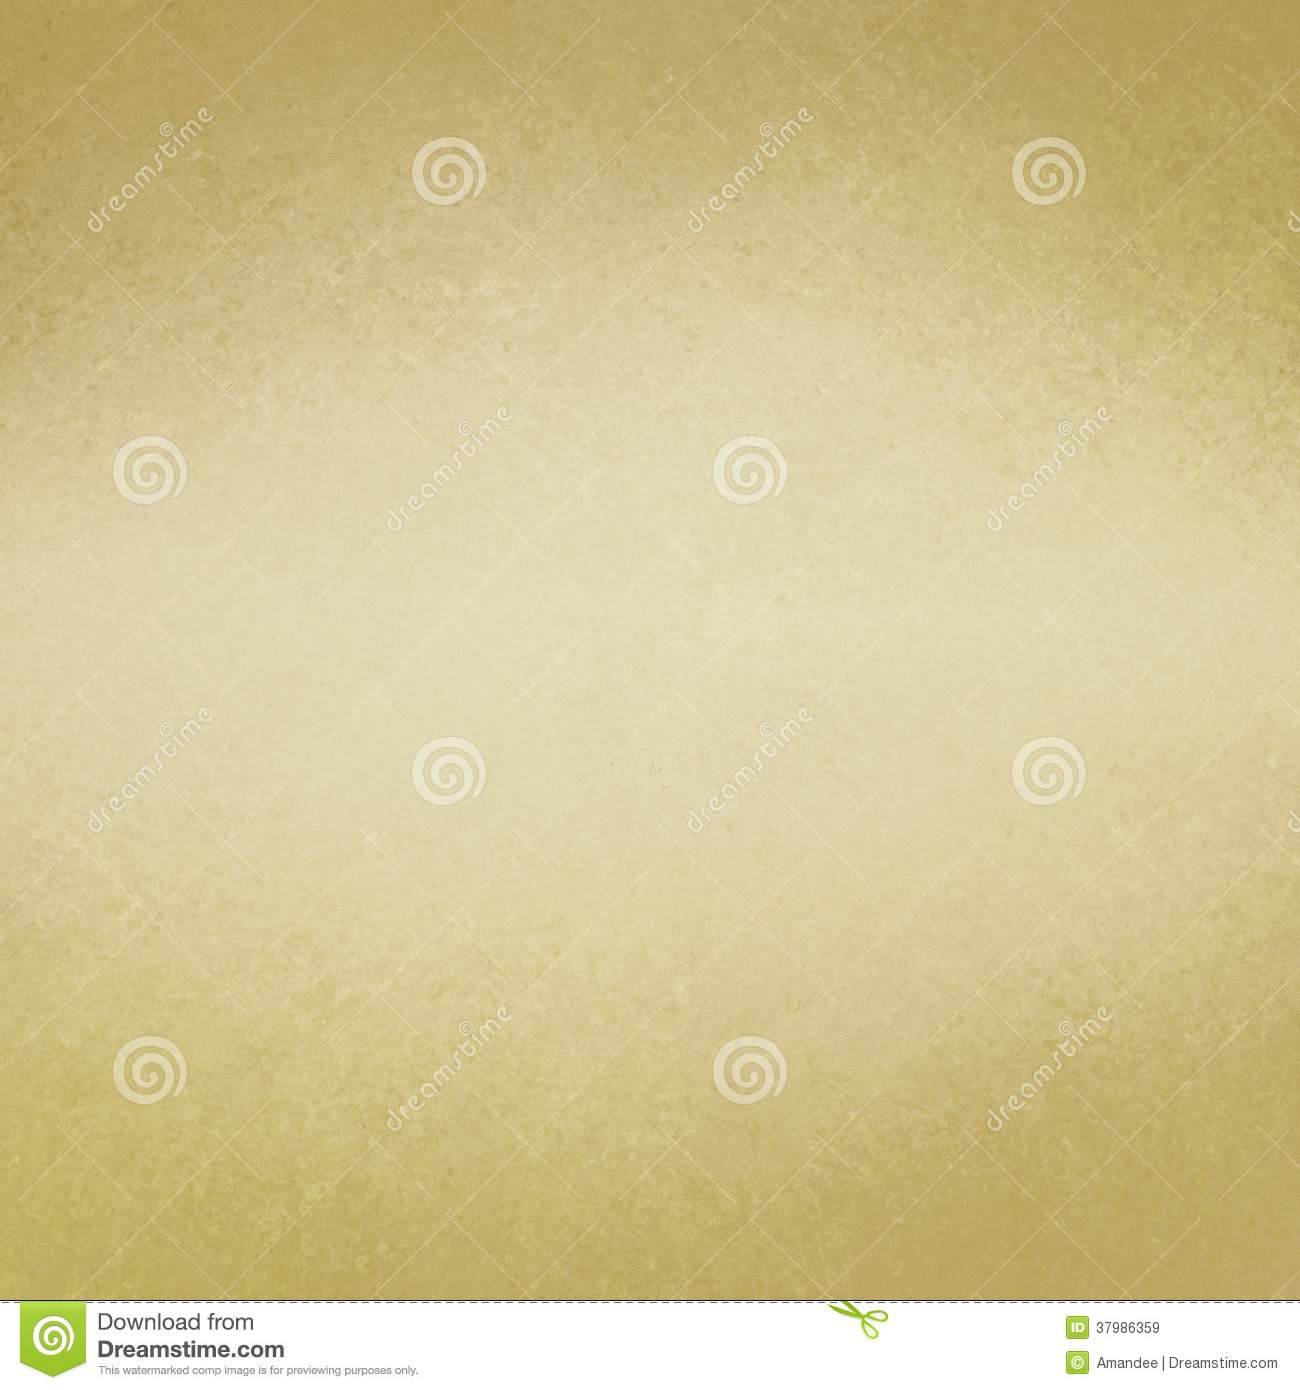 Abstract Gold Background Luxury Rich Vintage Grunge